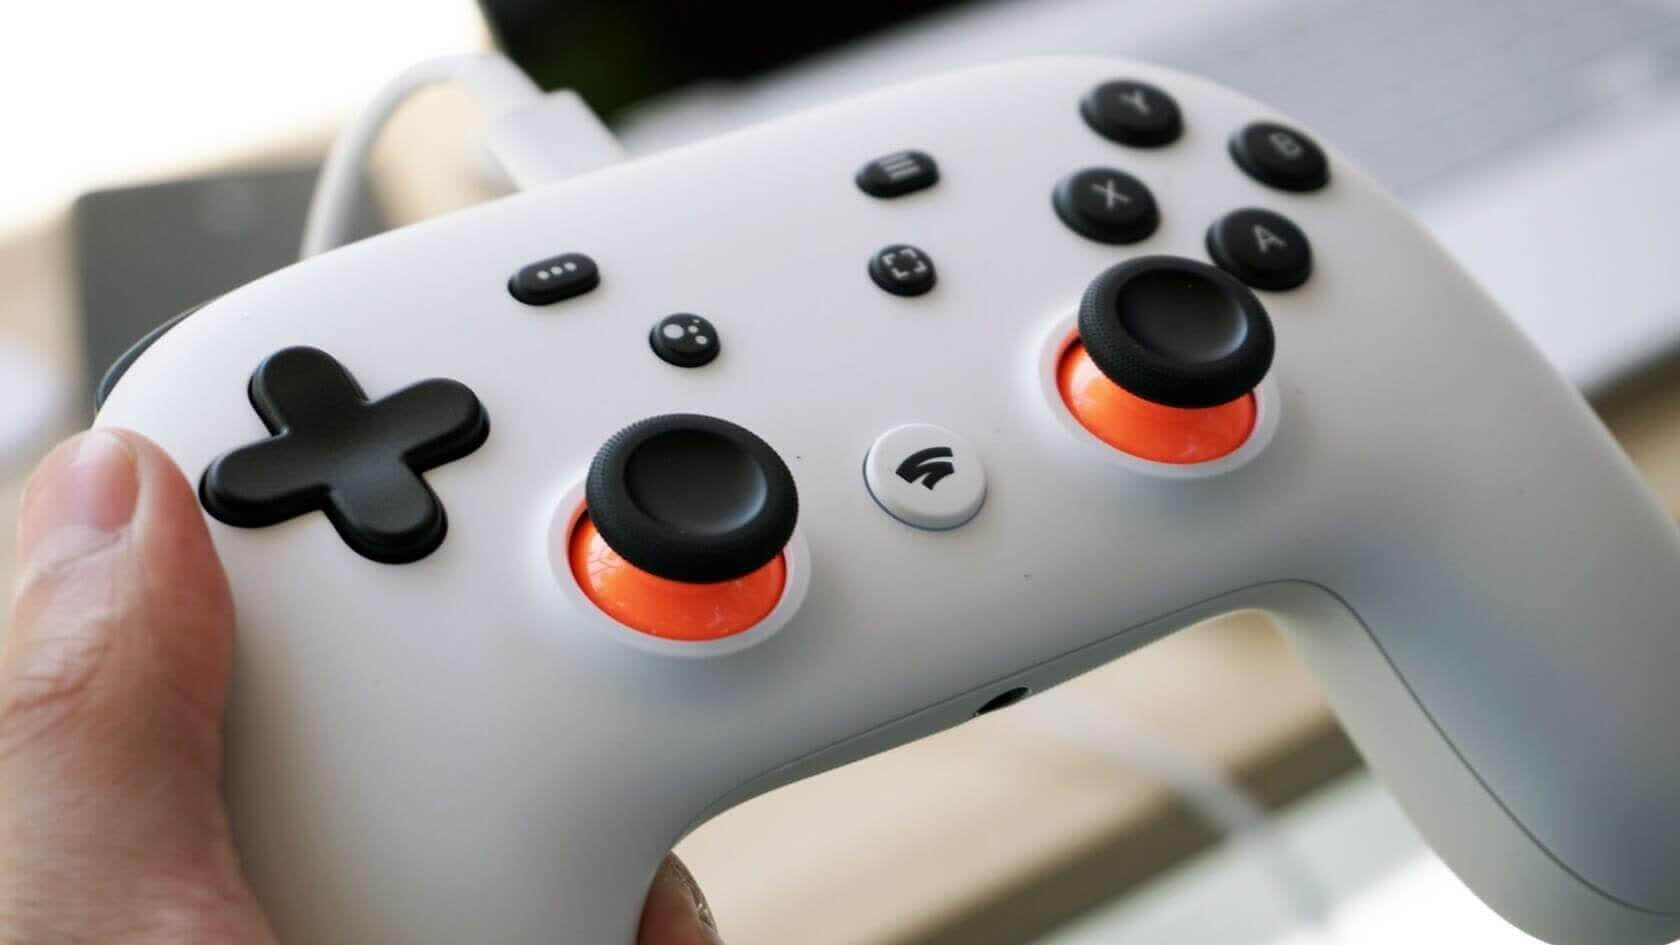 Google: Stadia is alive and well, though evidence suggests otherwise